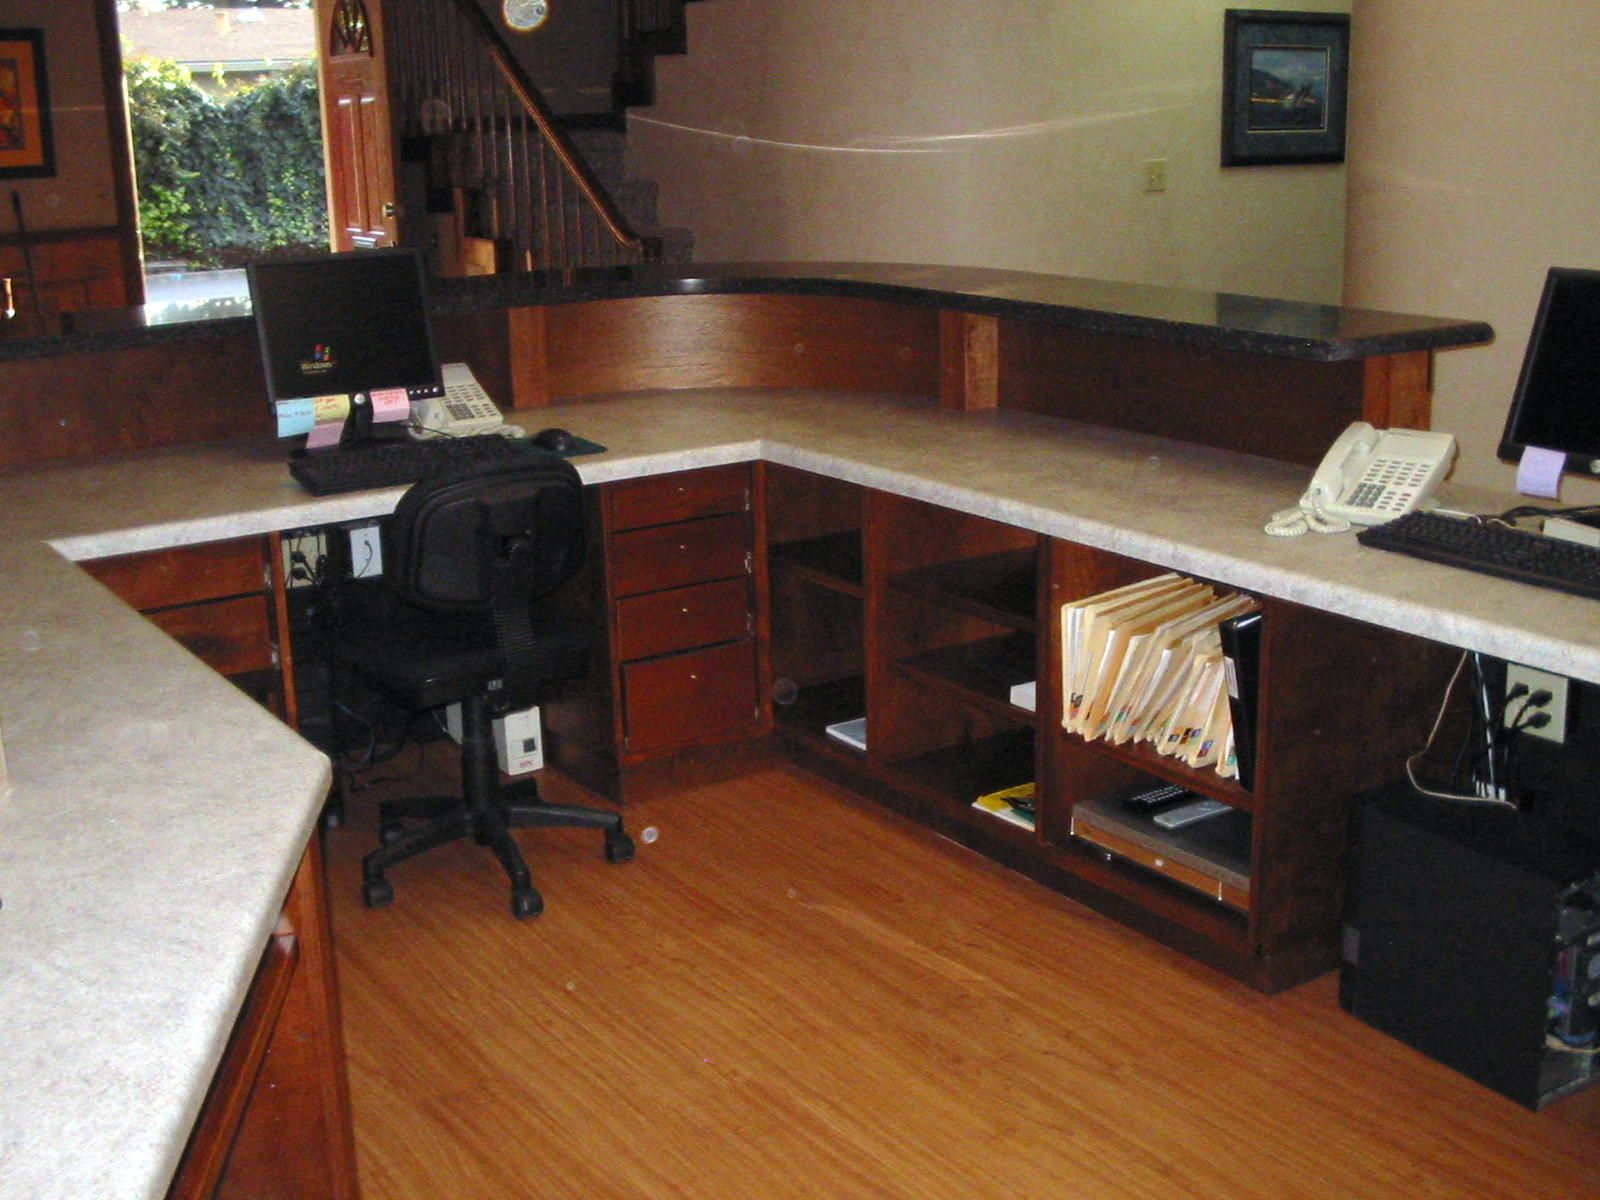 office countertops. Countertop Desks | Laminate Work Area Elementary School  Office Countertops H